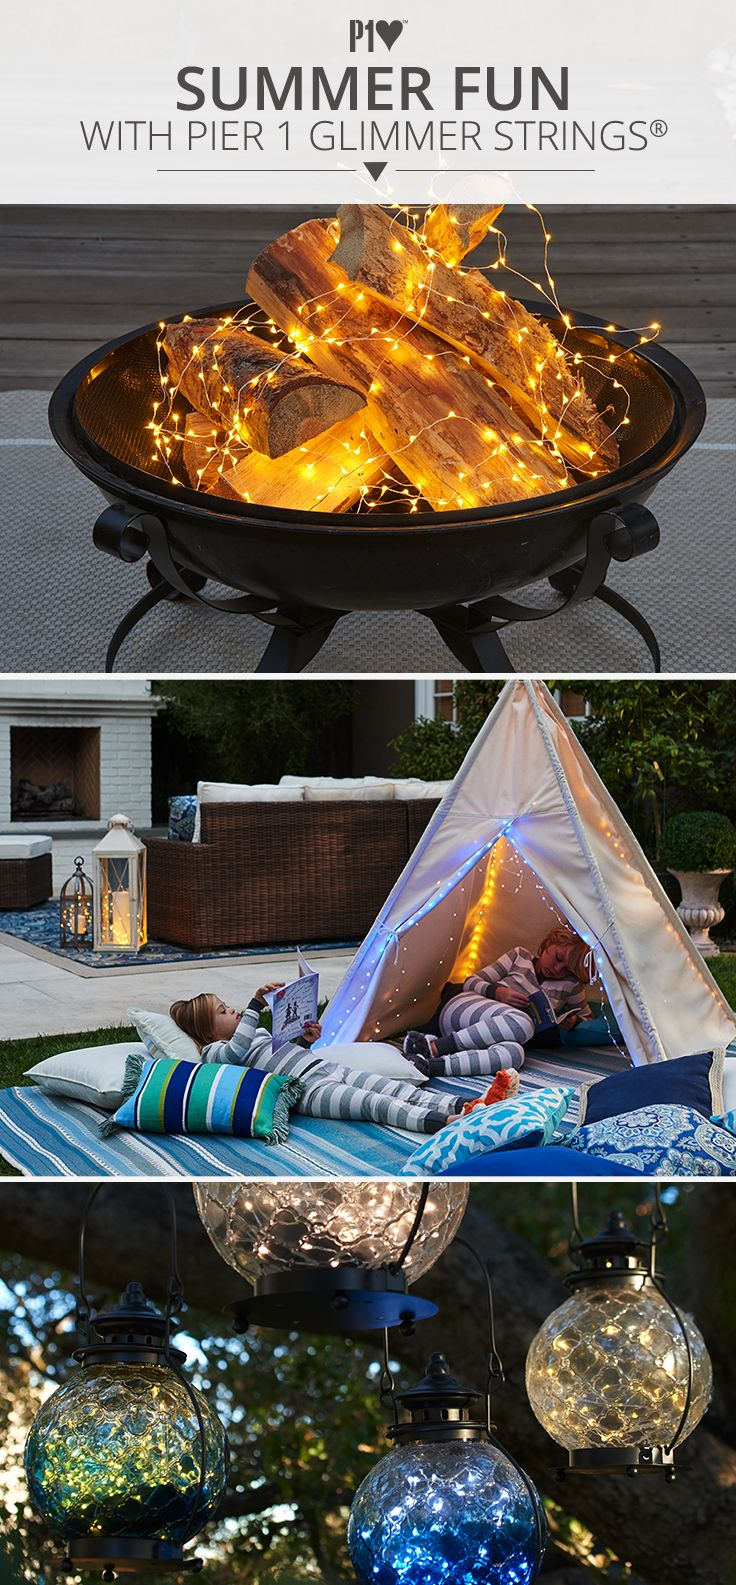 Whether you want to enjoy an evening by the fire pit